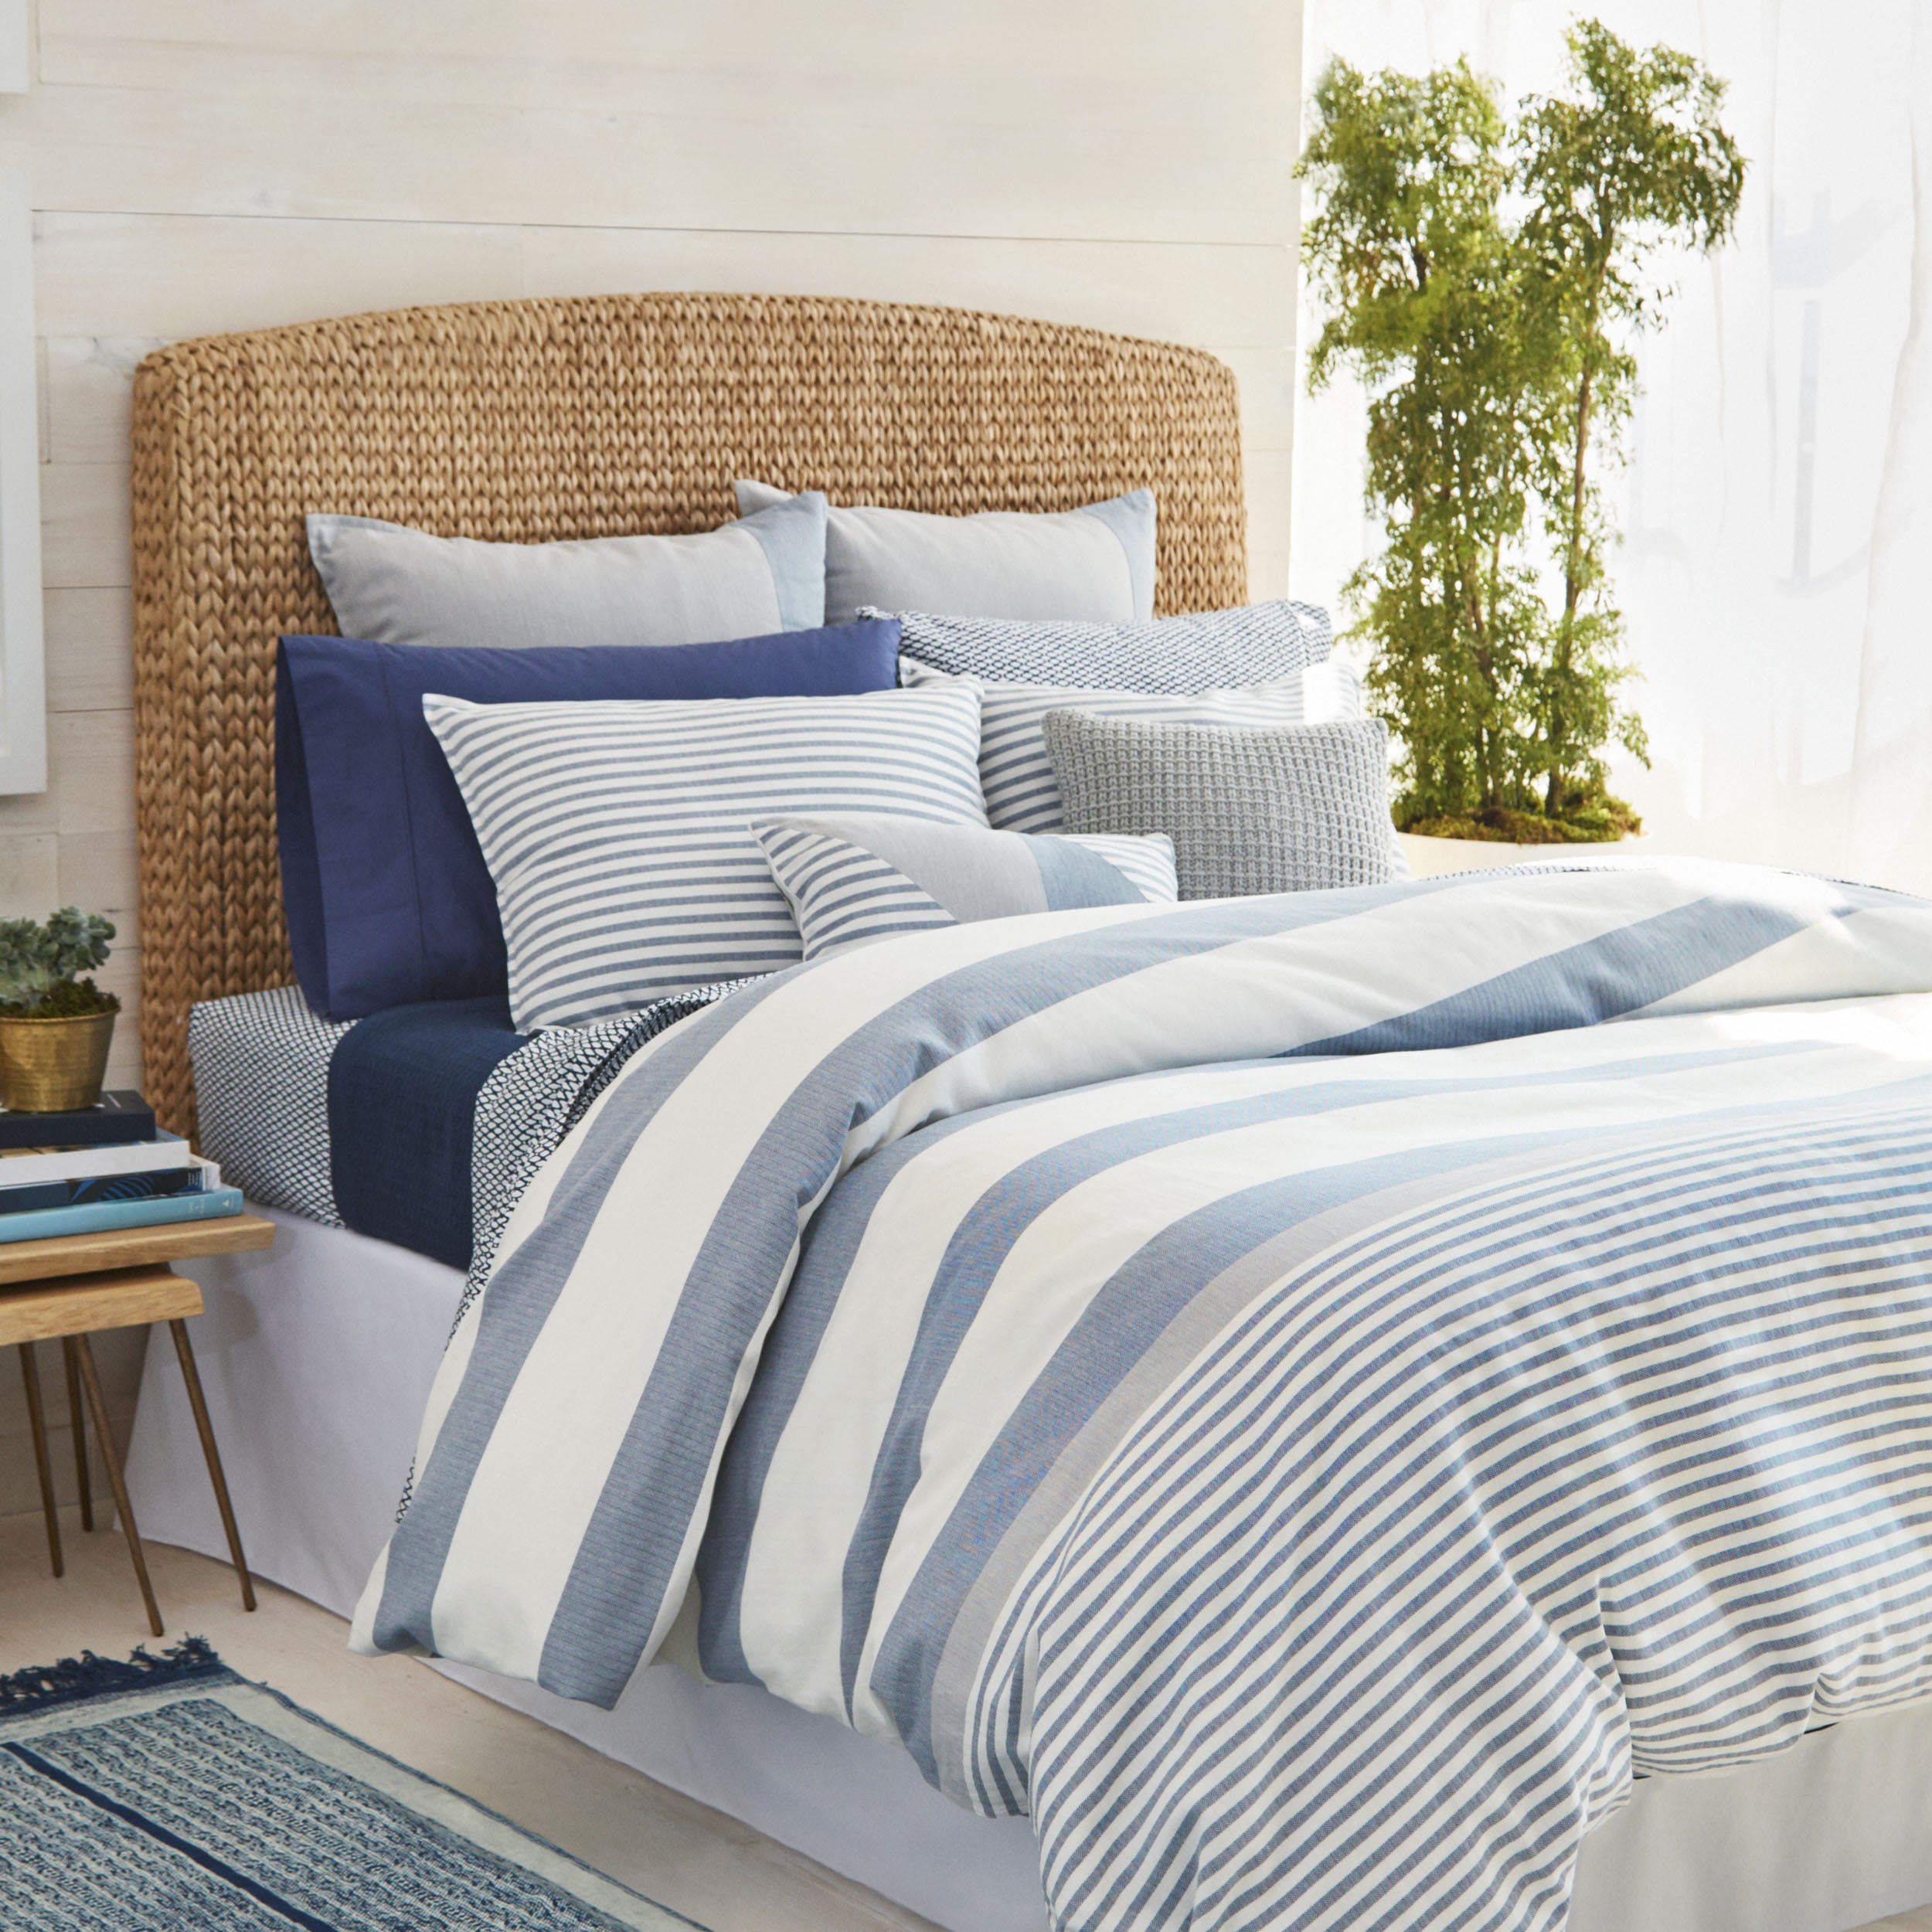 Nautica Fairwater Navy And White Nautical Comforter Set Twin Size As Is Item Overstock 17158239